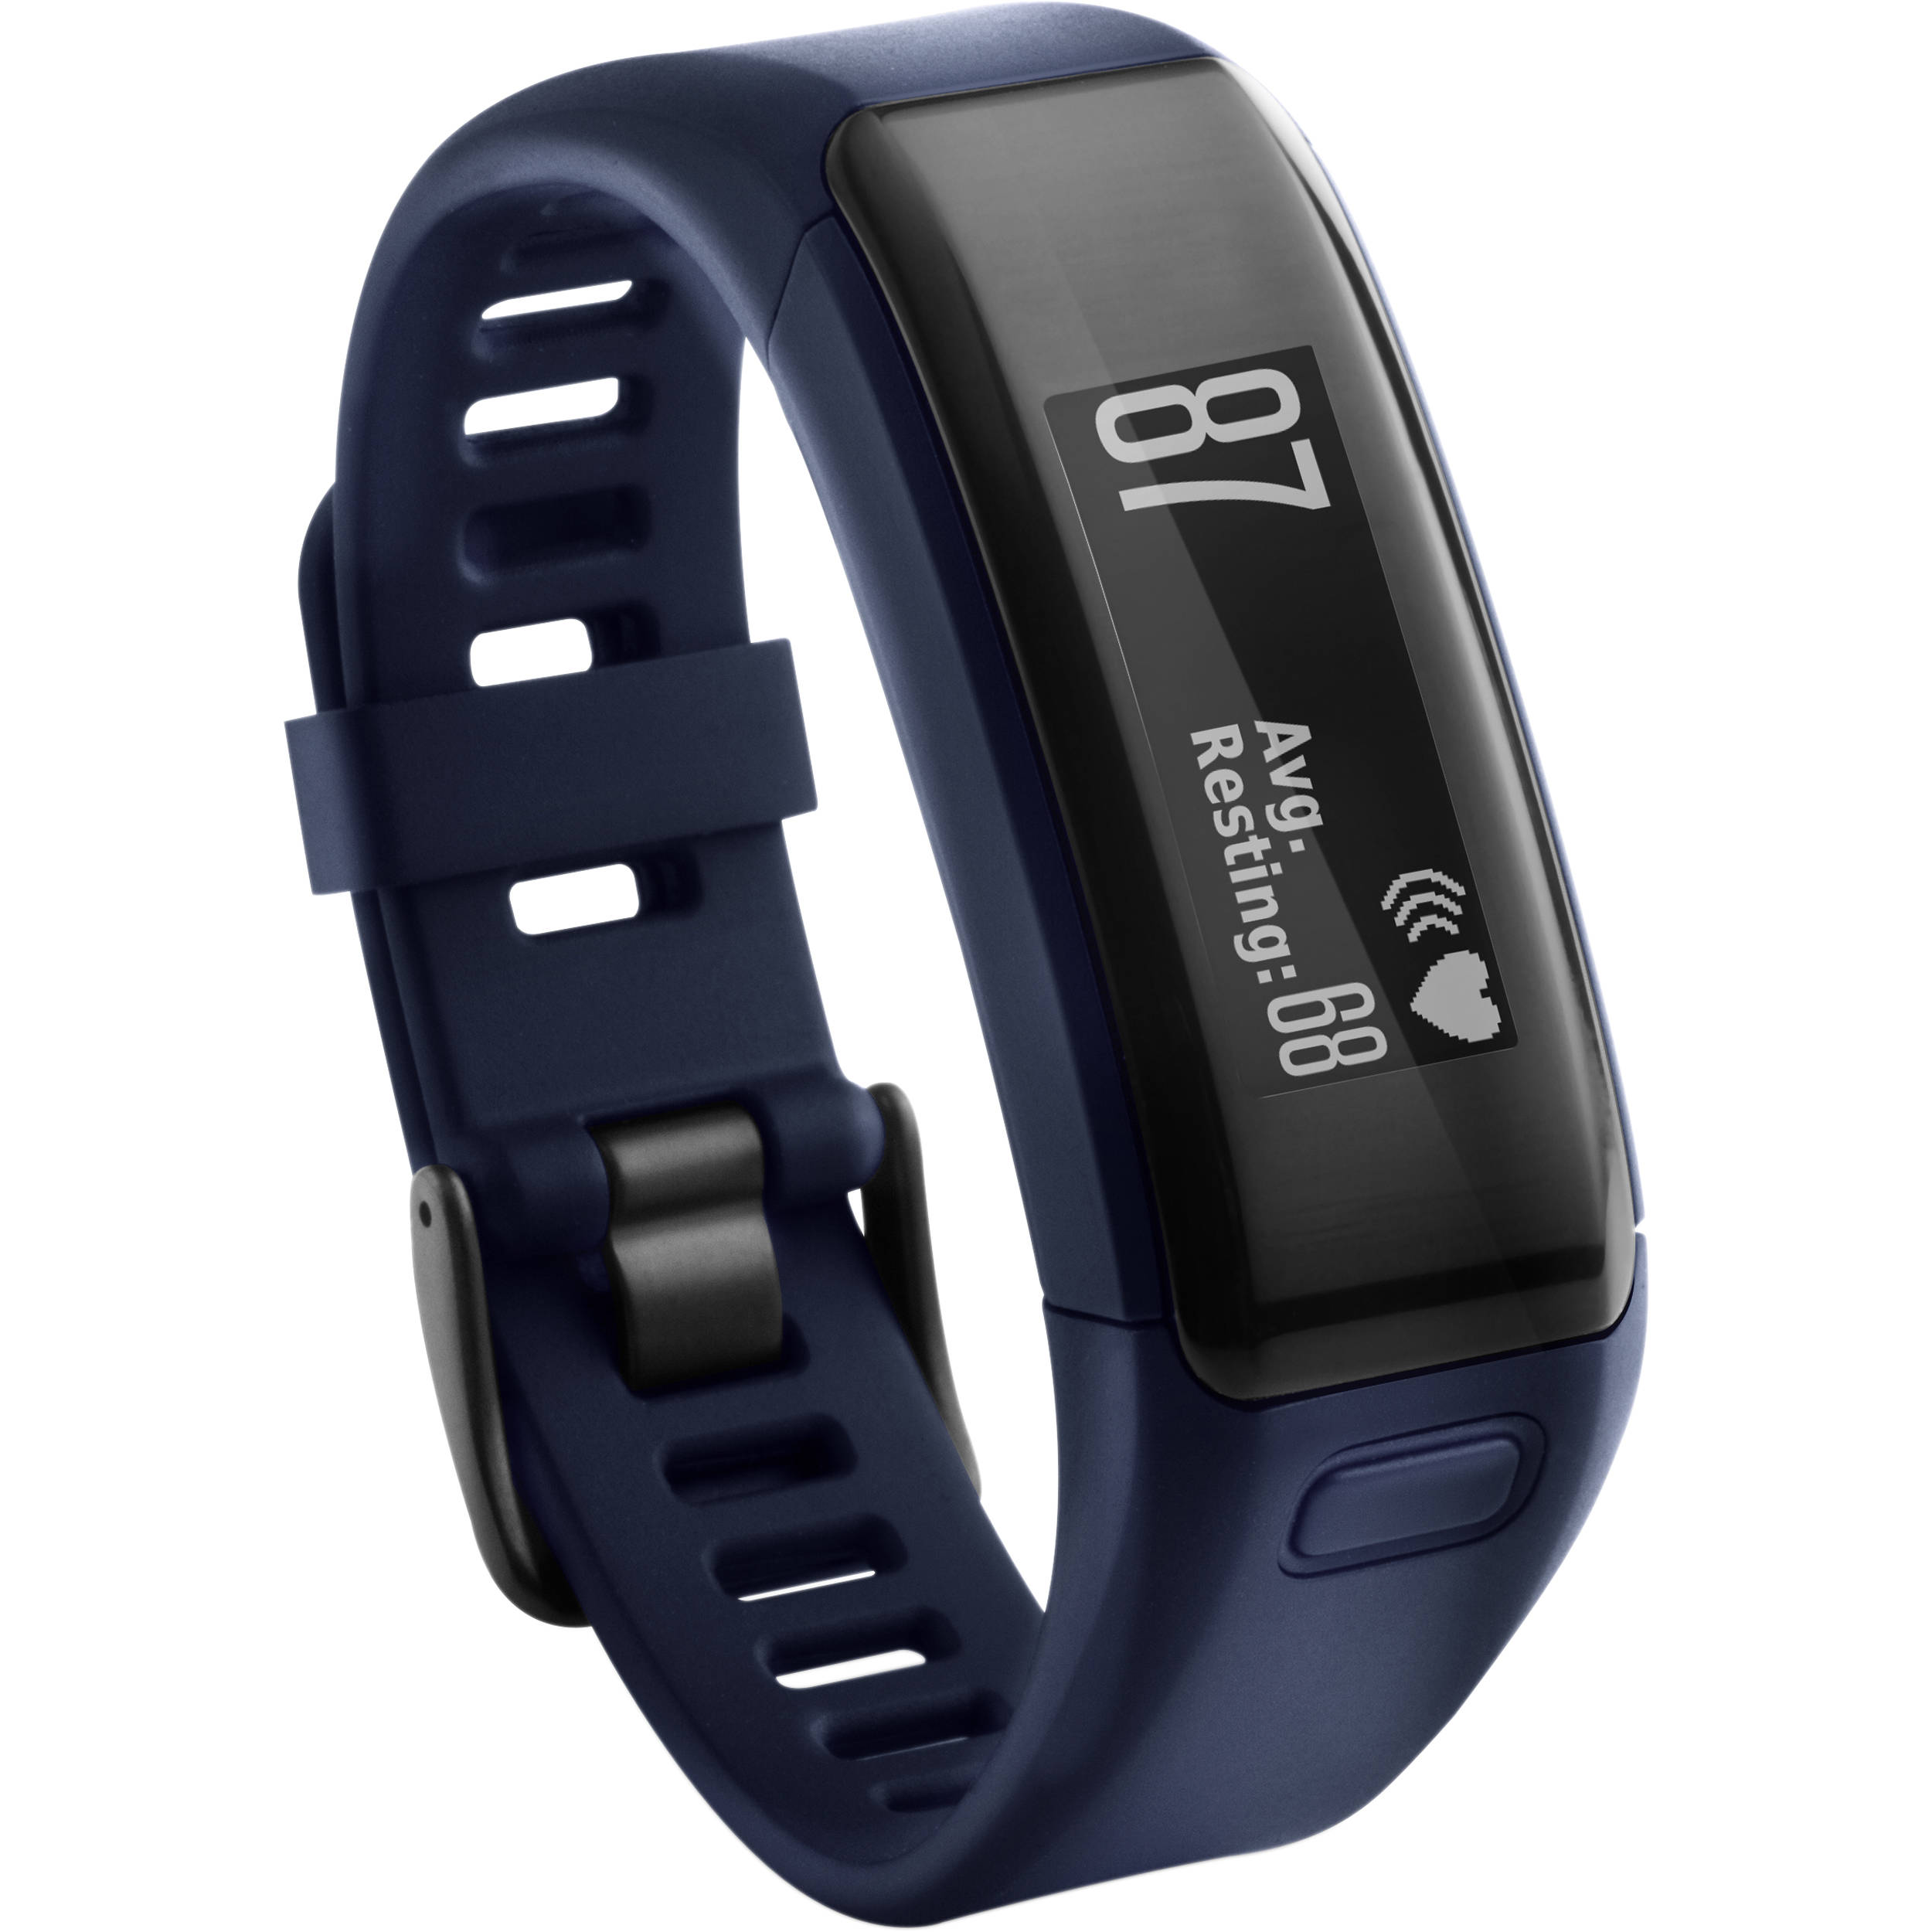 Watch with wrist hrm - Best Fitness Trackers 2017 The Top 10 Activity Bands On The Planet Techradar